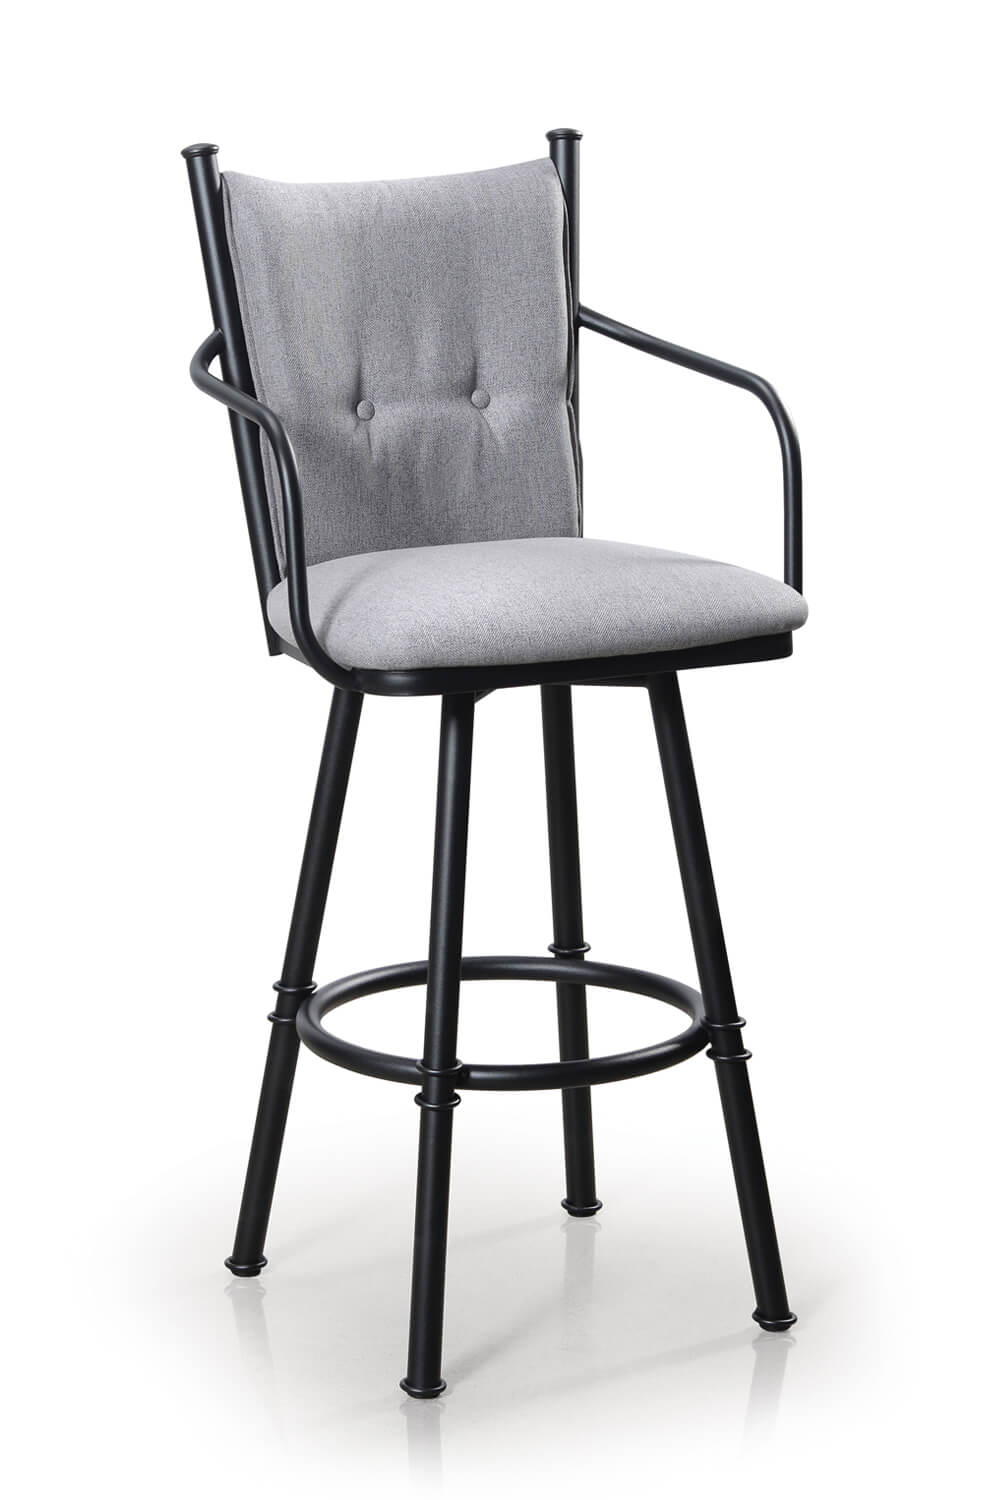 Buy Trica S Arthur Swivel Kitchen Counter Bar Stool W Arms